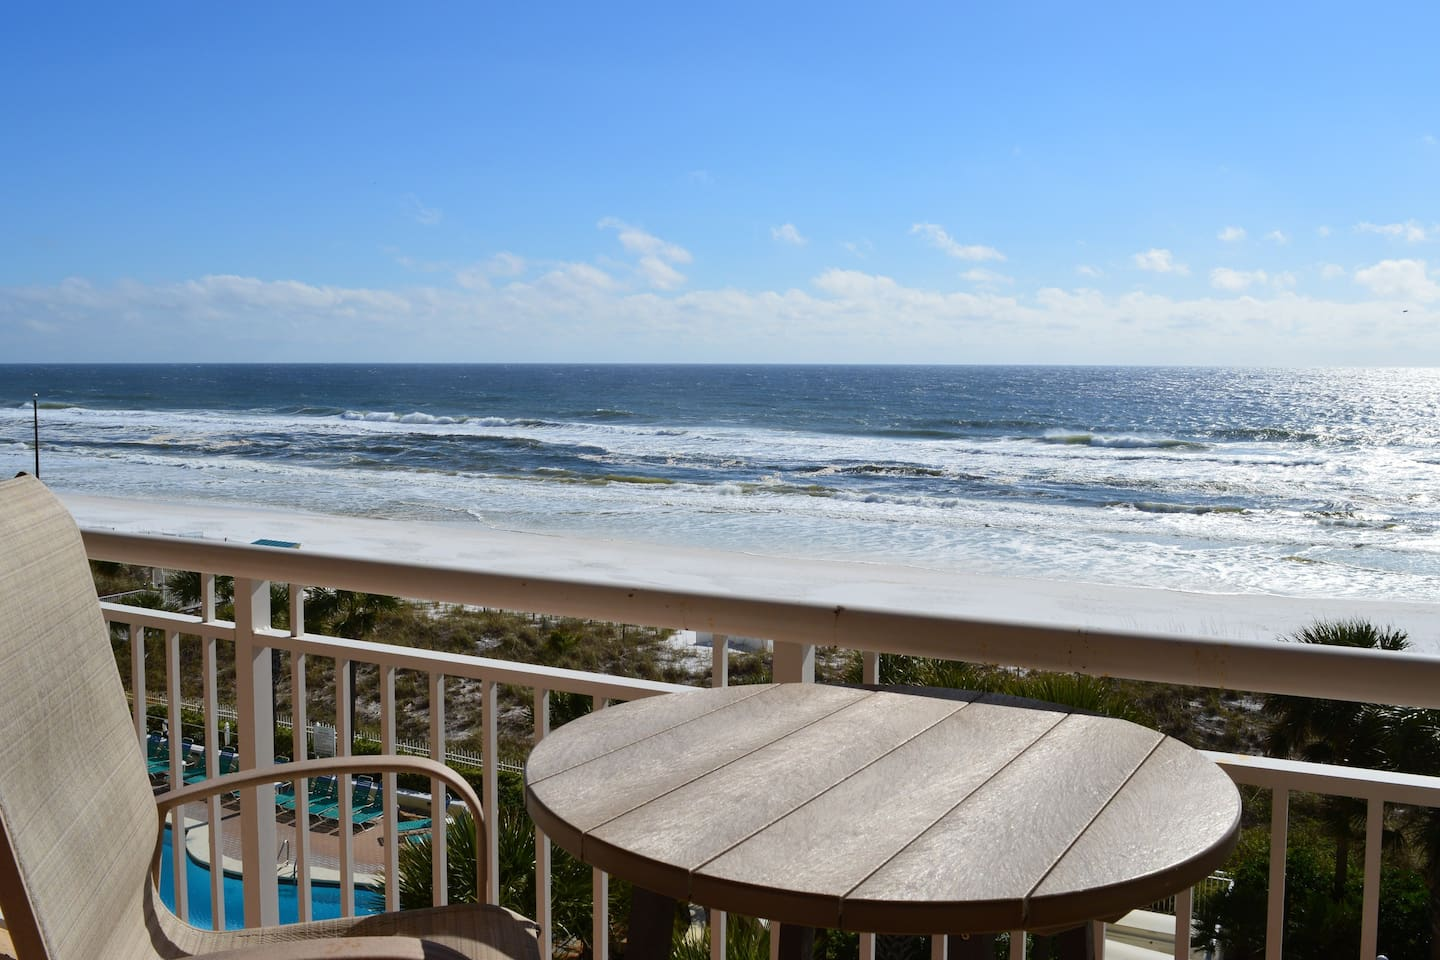 Destin Towers 51 - Balcony View